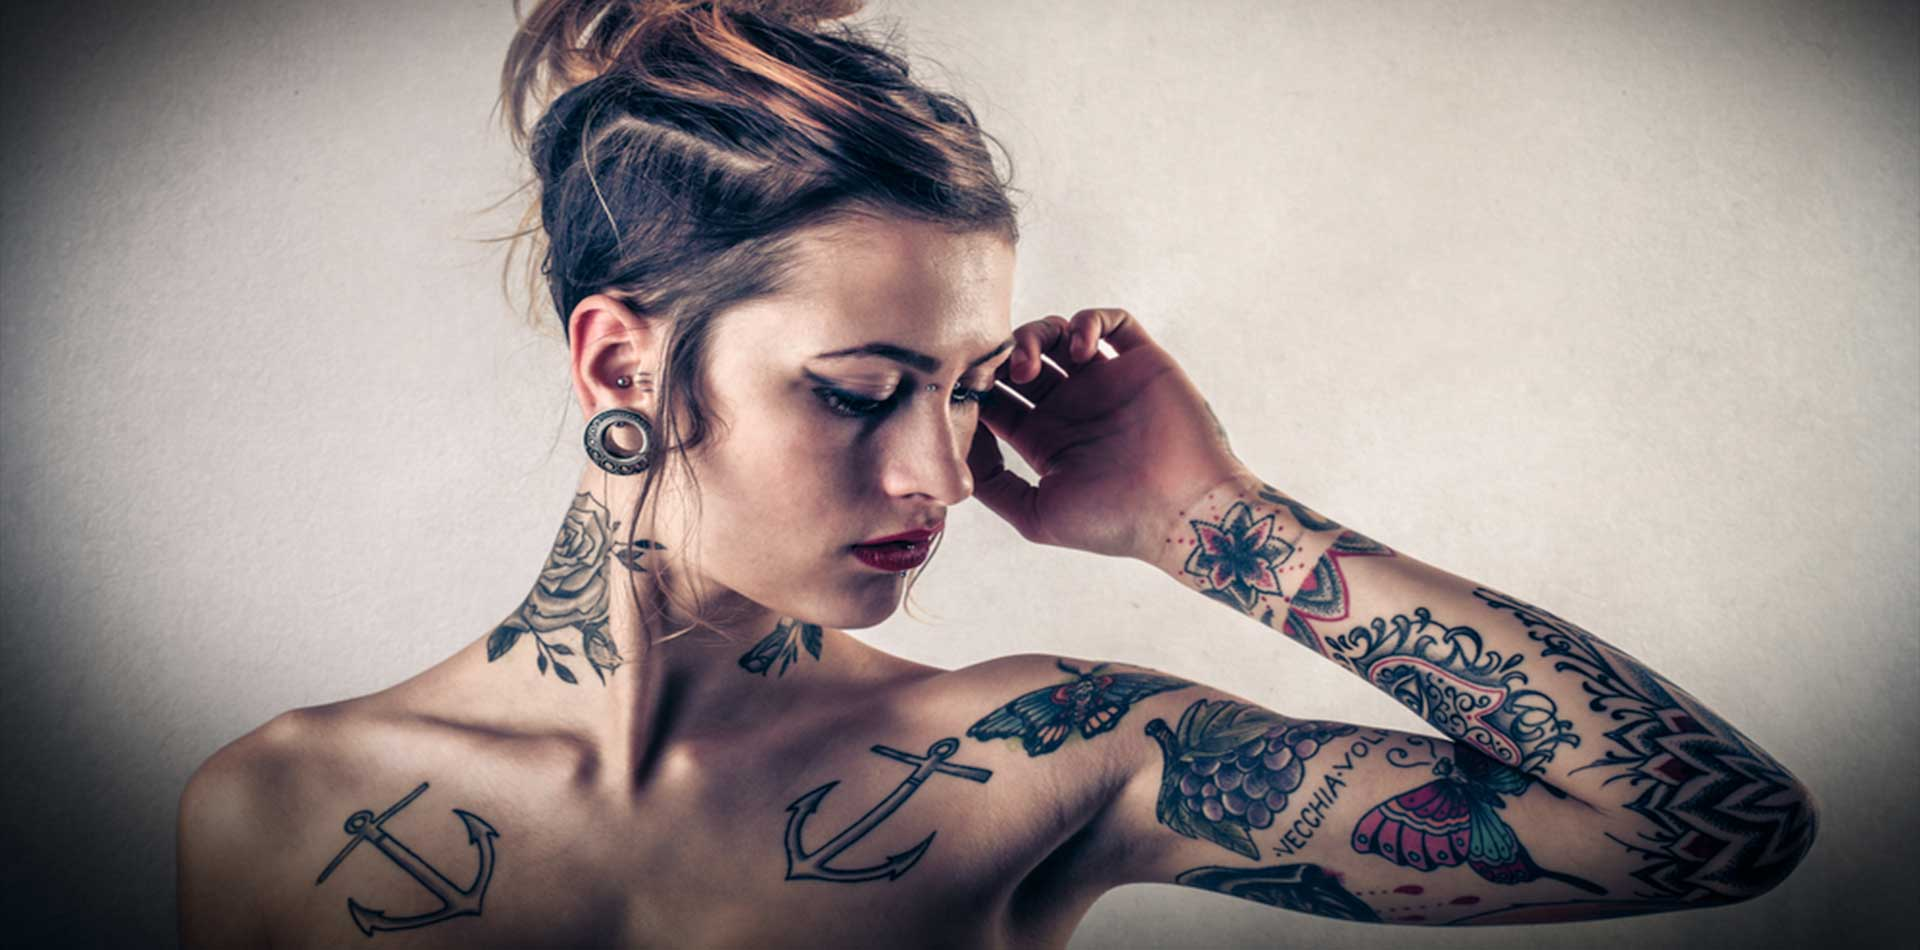 12 tattoos body piercing tattoo shop groton ct for Tattoos and piercing